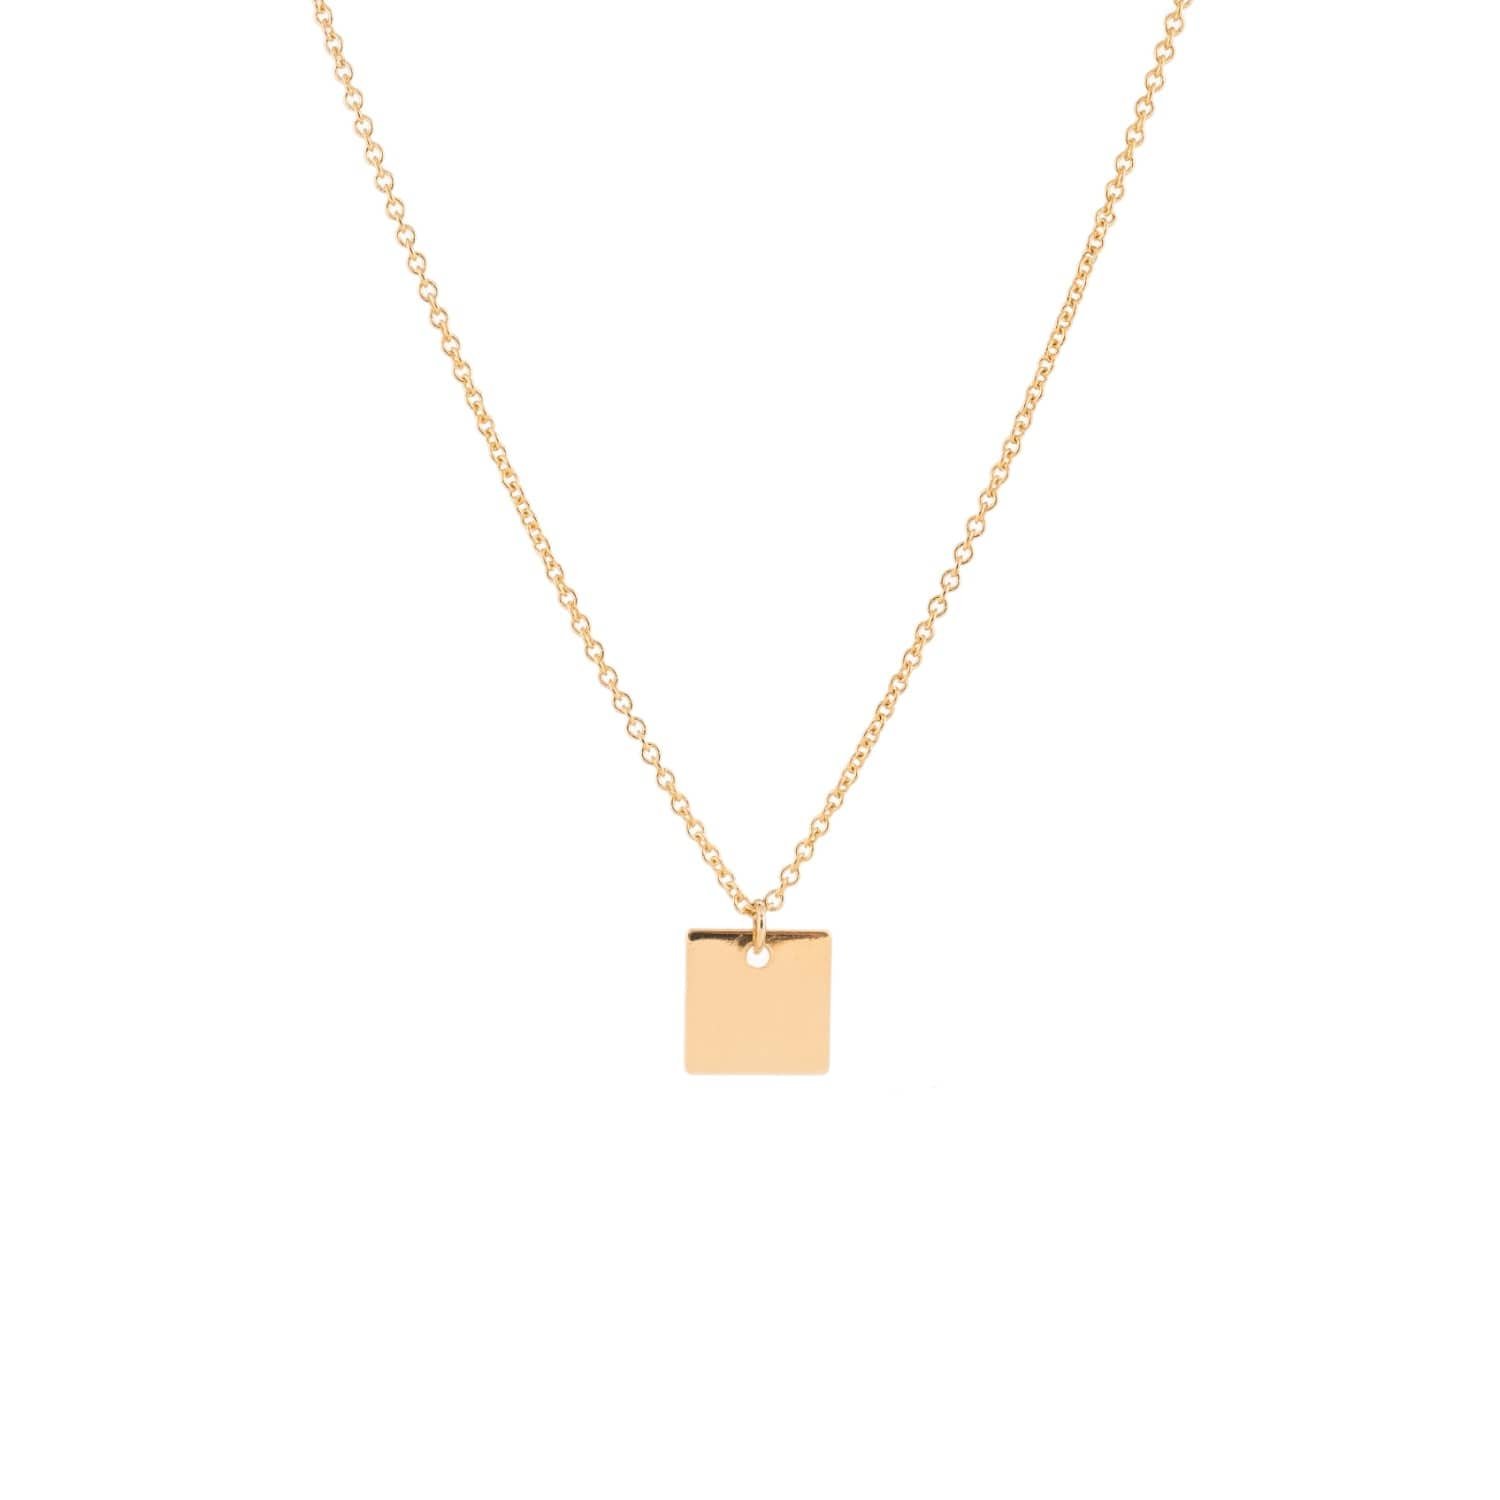 Gold square pendant necklace featherstone wolf badger gold square pendant necklace image aloadofball Choice Image